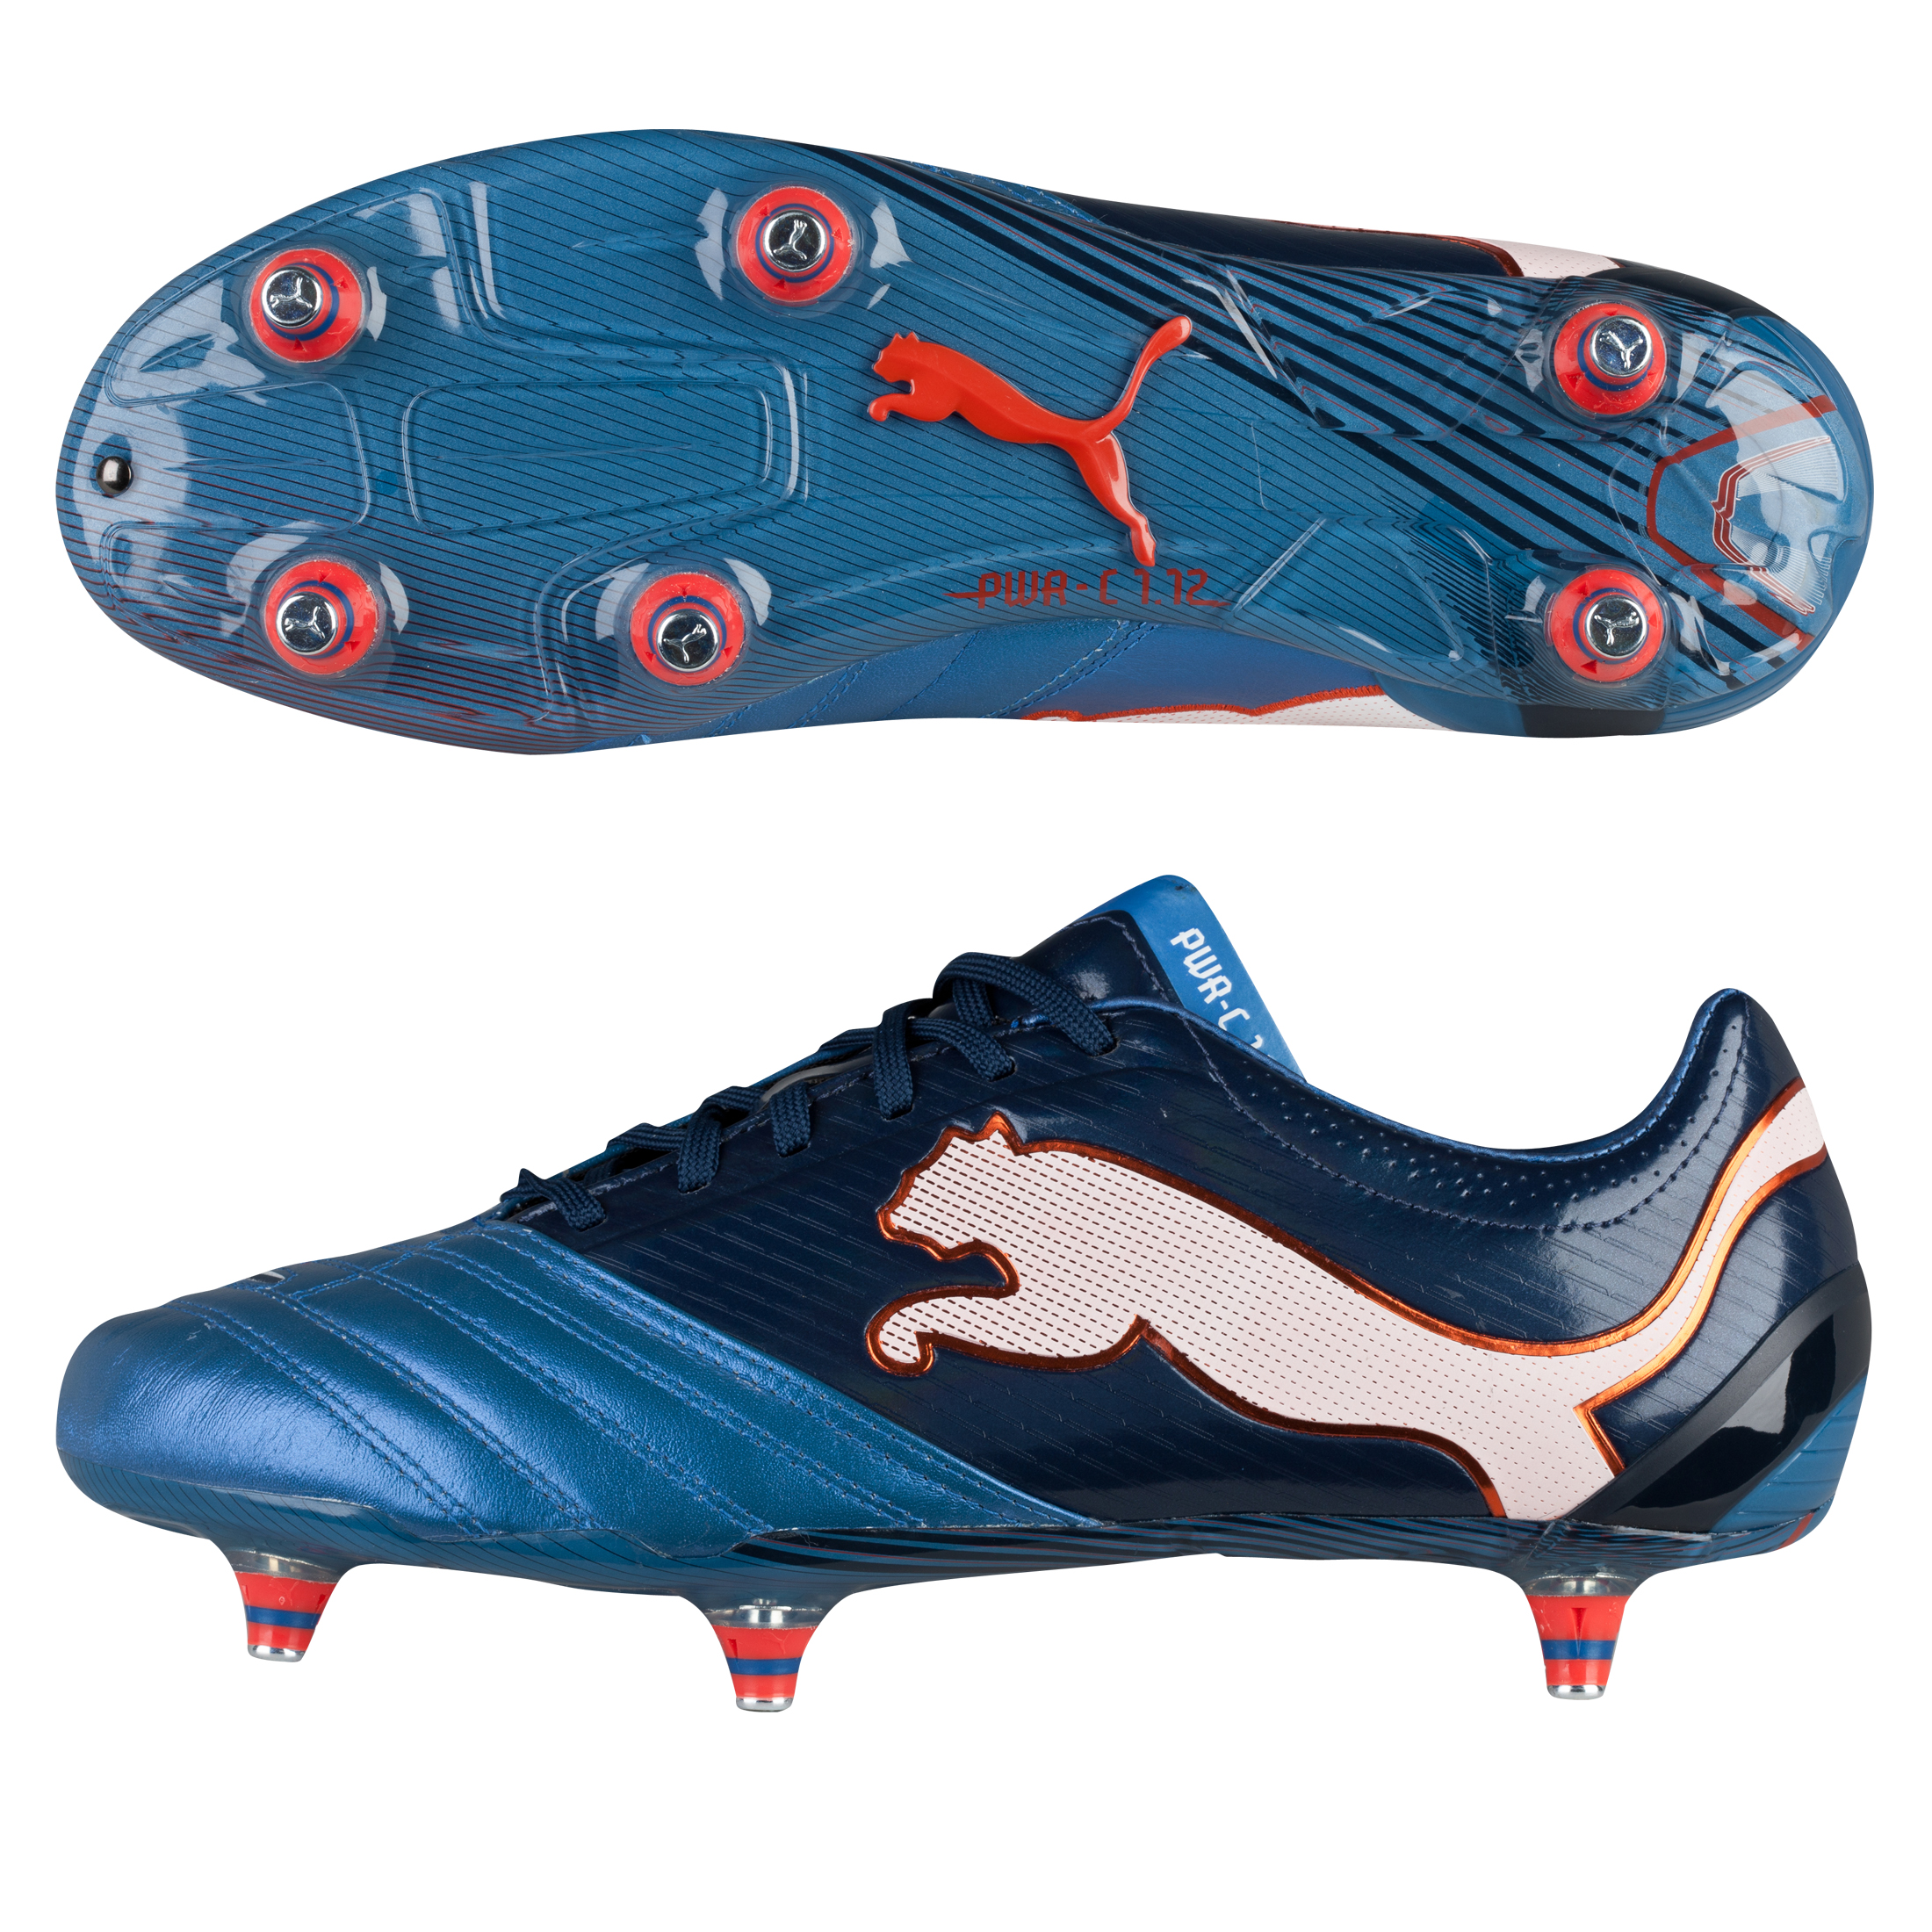 Puma PowerCat 1.12 Soft Ground Football Boots - Metallic Blue/Black Iris/White/Orange